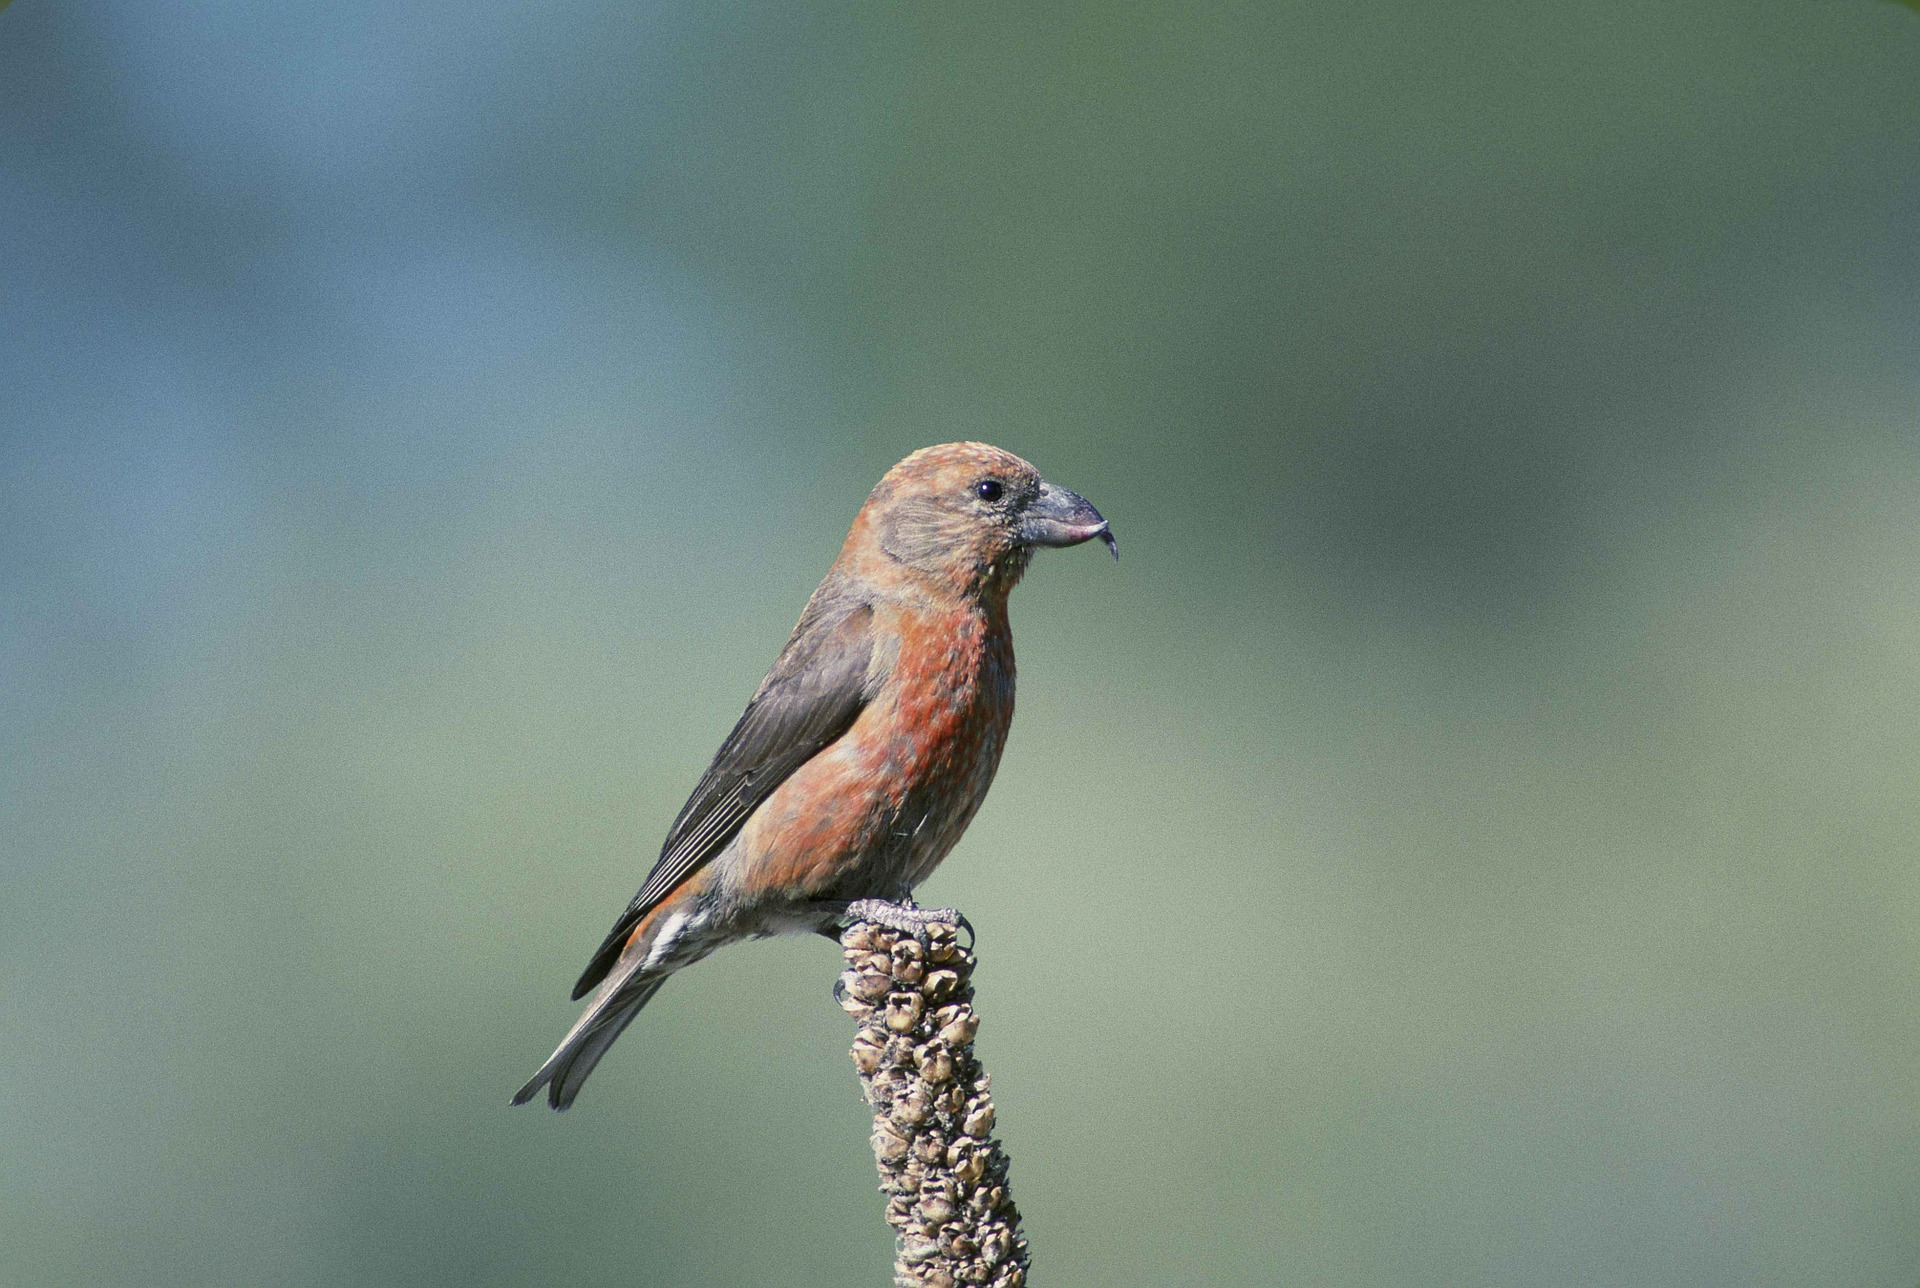 Crossbill (PublicDomainImages from Pixabay)